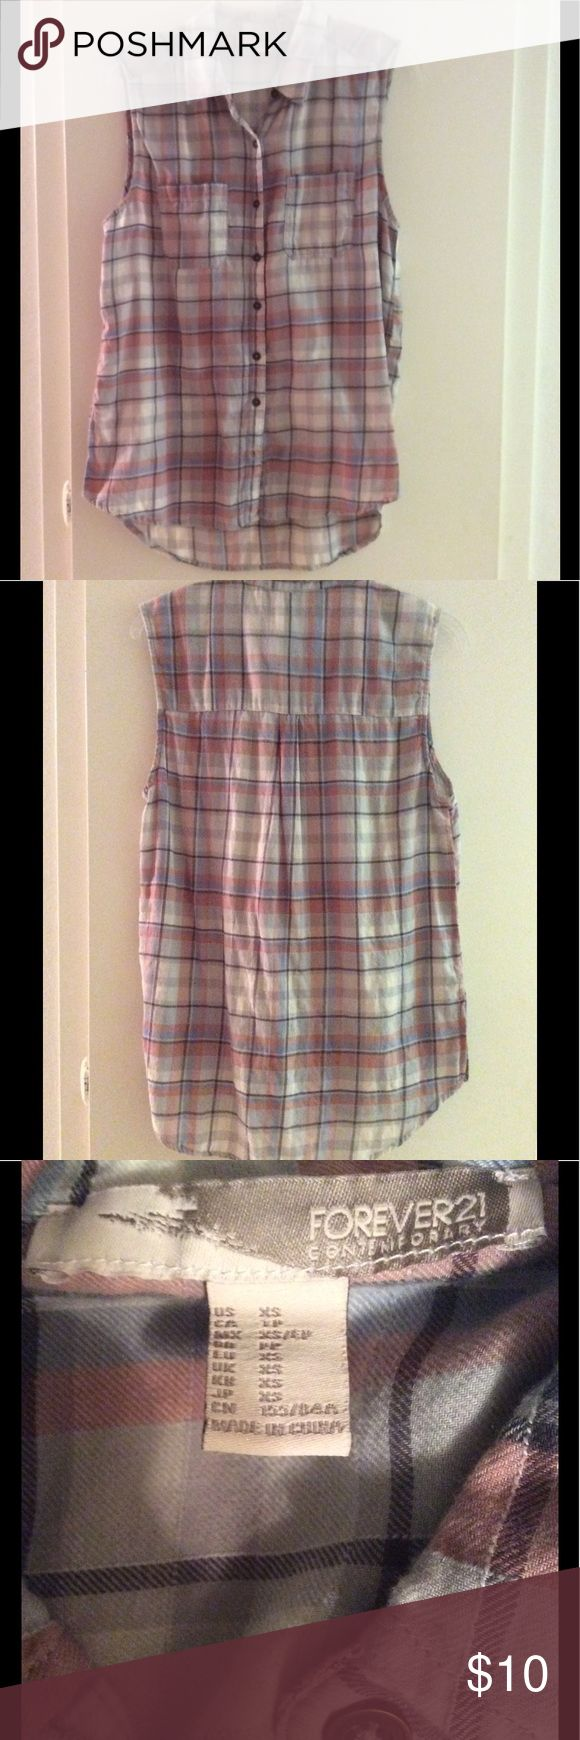 Forever 21 sleeveless flannel tunic Adorable top, looks great with white jeans. Worn once, perfect condition Forever 21 Tops Tunics